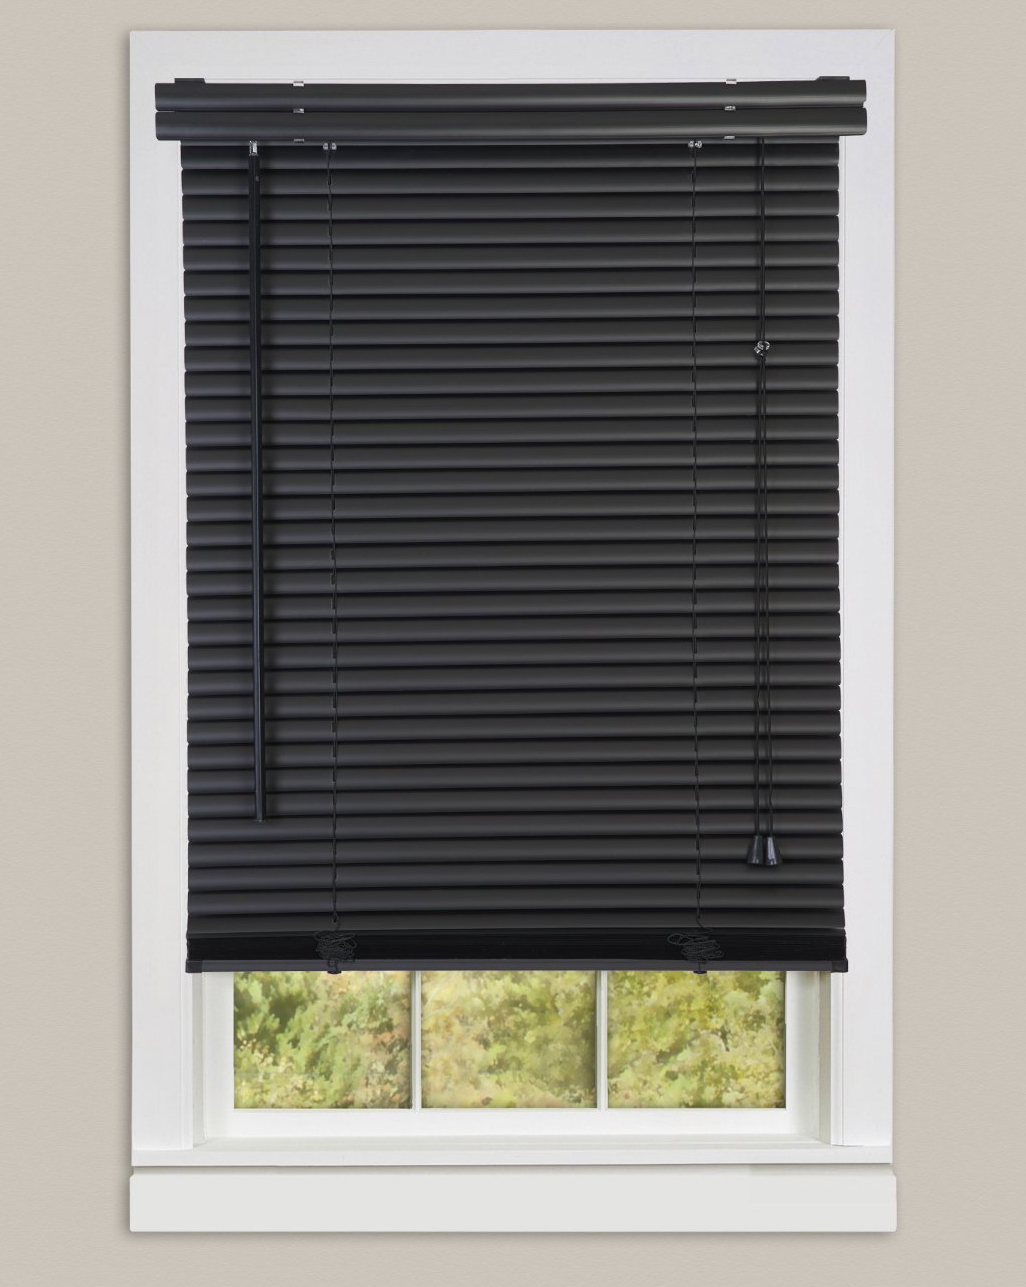 wood blinds as finding decor offer can window and assist blind in shades vertical coverings whatever mini discount faux we sales wooden well oregon cleaning you the